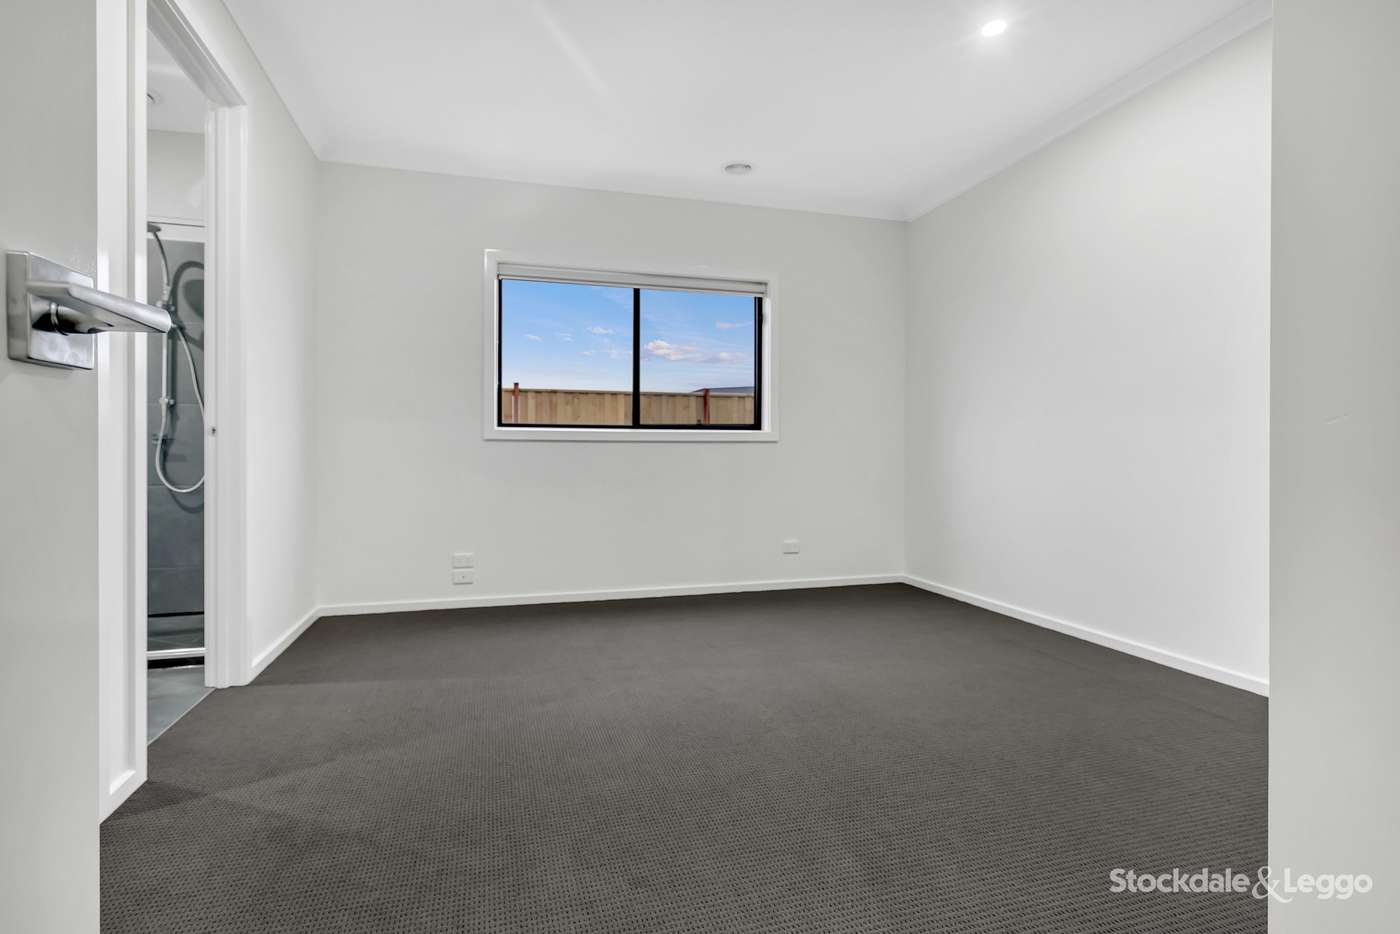 Seventh view of Homely house listing, 9 Wheatland Drive, Truganina VIC 3029